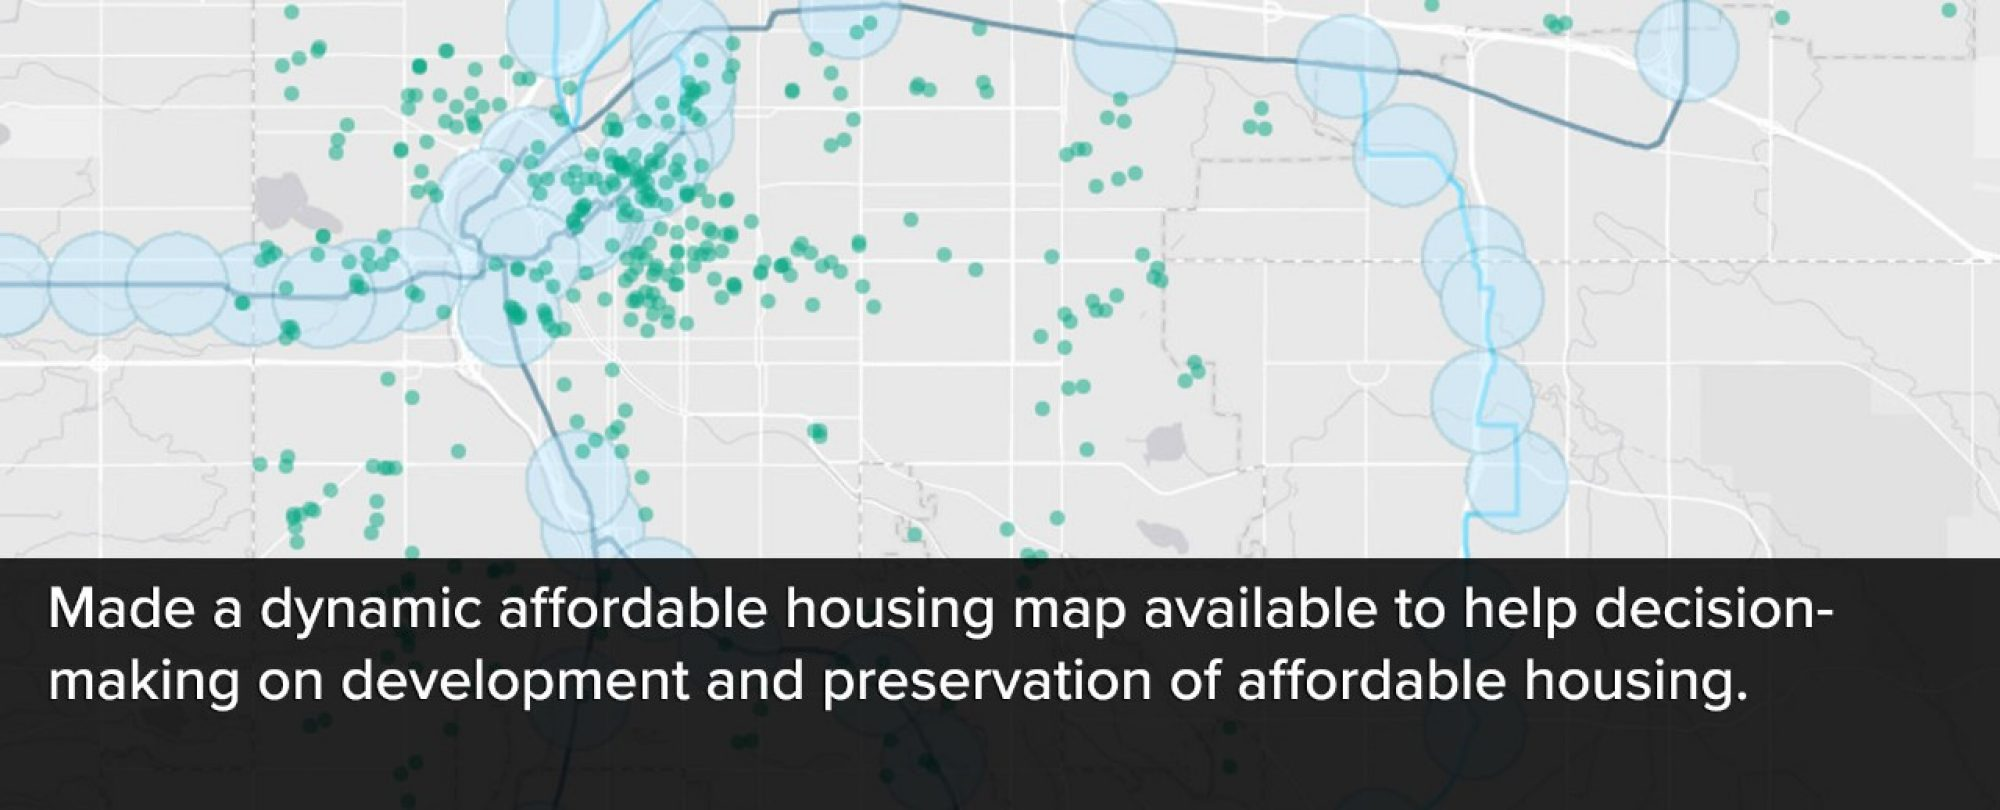 Image of the affordable housing map. The city made a dynamic affordable housing map available to help decision-making on development and preservation of affordable housing.